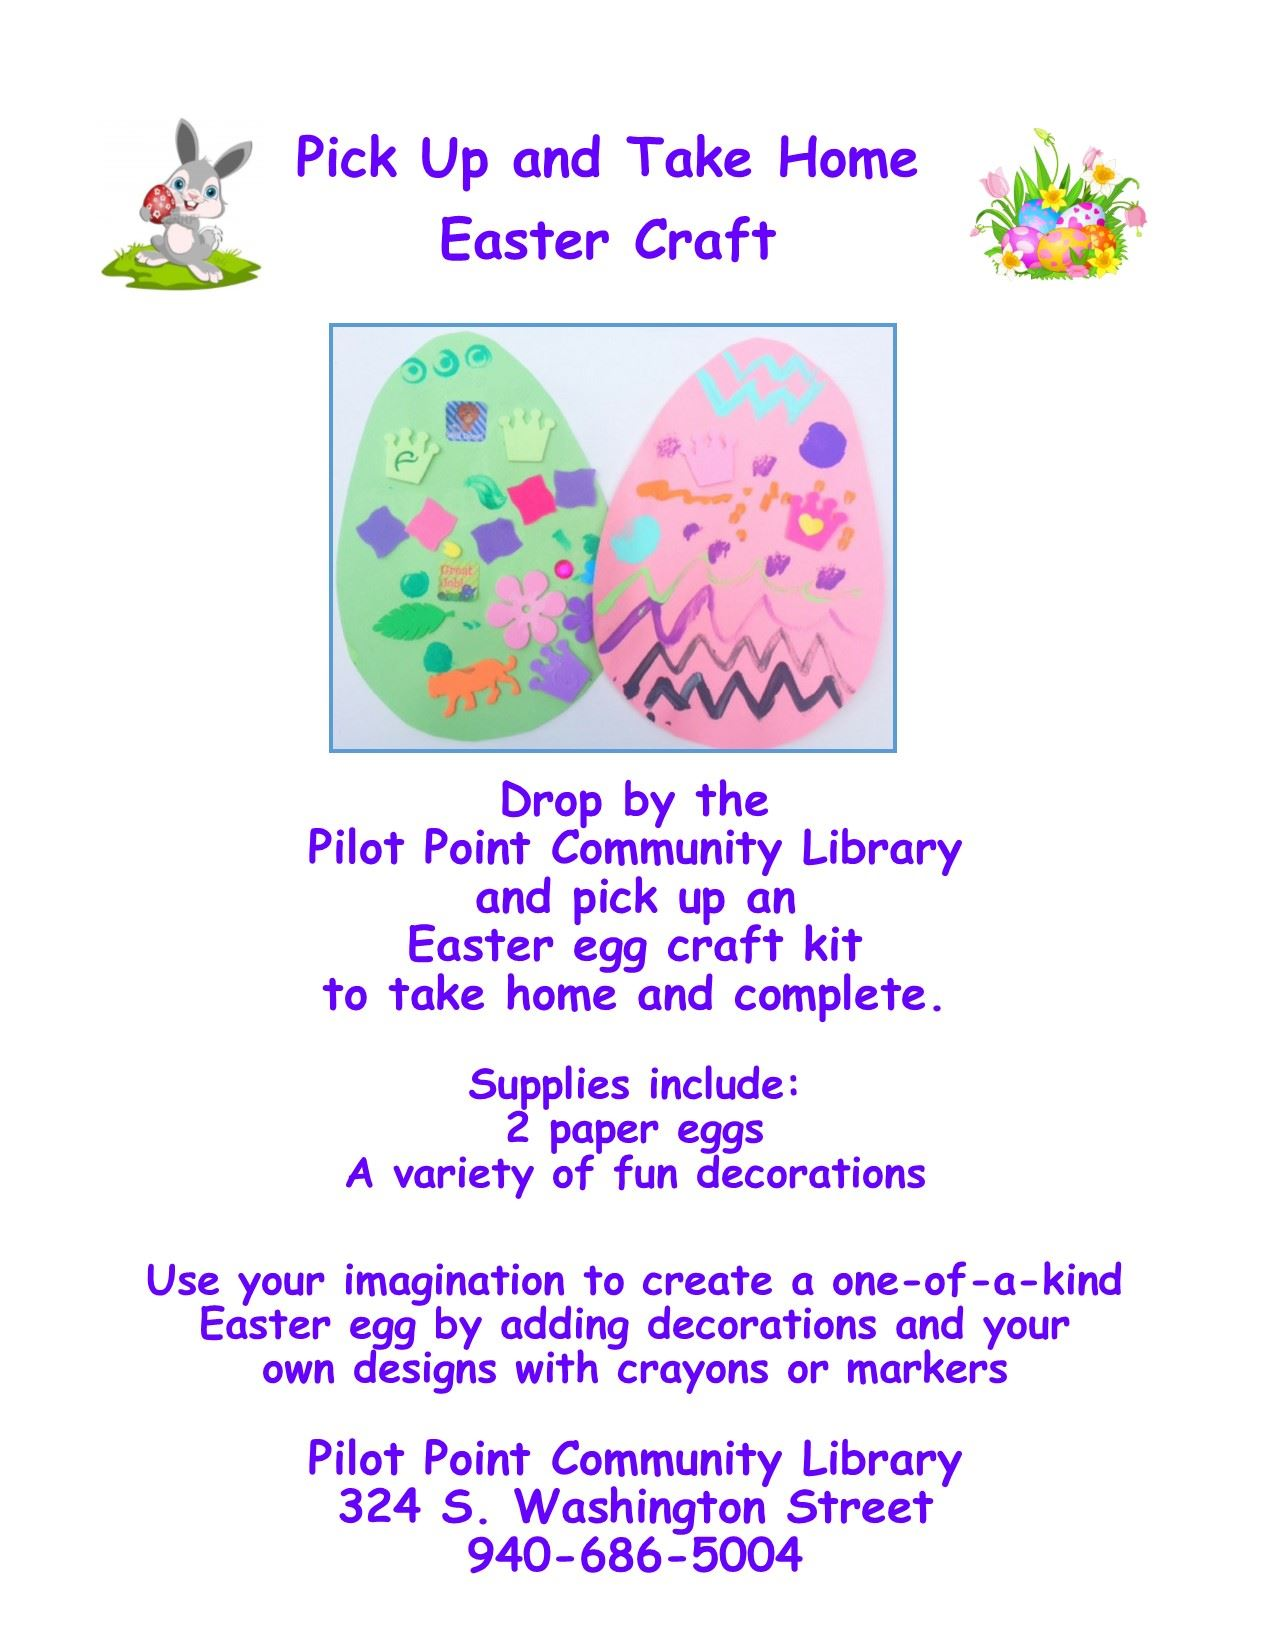 Spring.easter craft flier